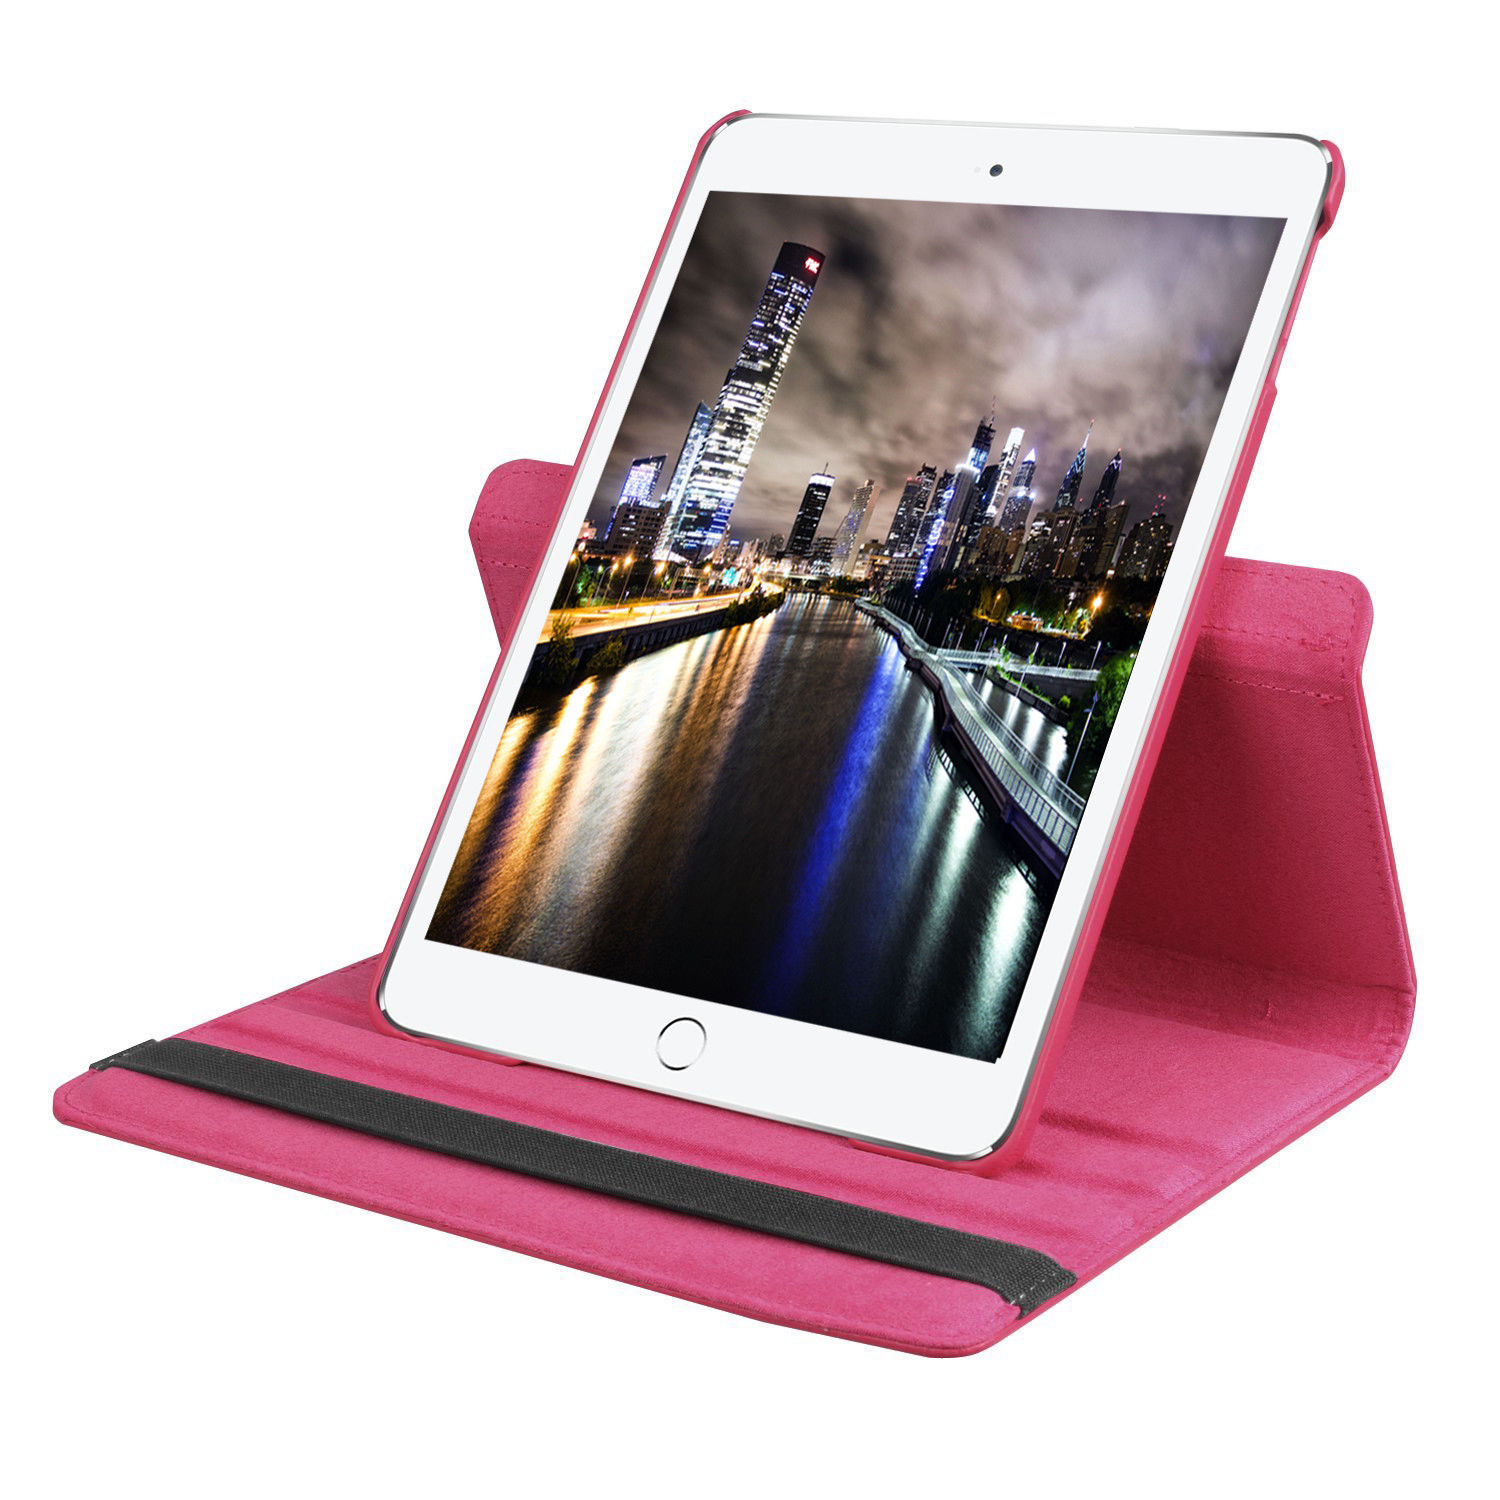 Custodia-per-Apple-iPad-Pro-2017-iPad-Air-3-10-5-Smart-Cover-Case-Custodia-Protettiva miniatura 41